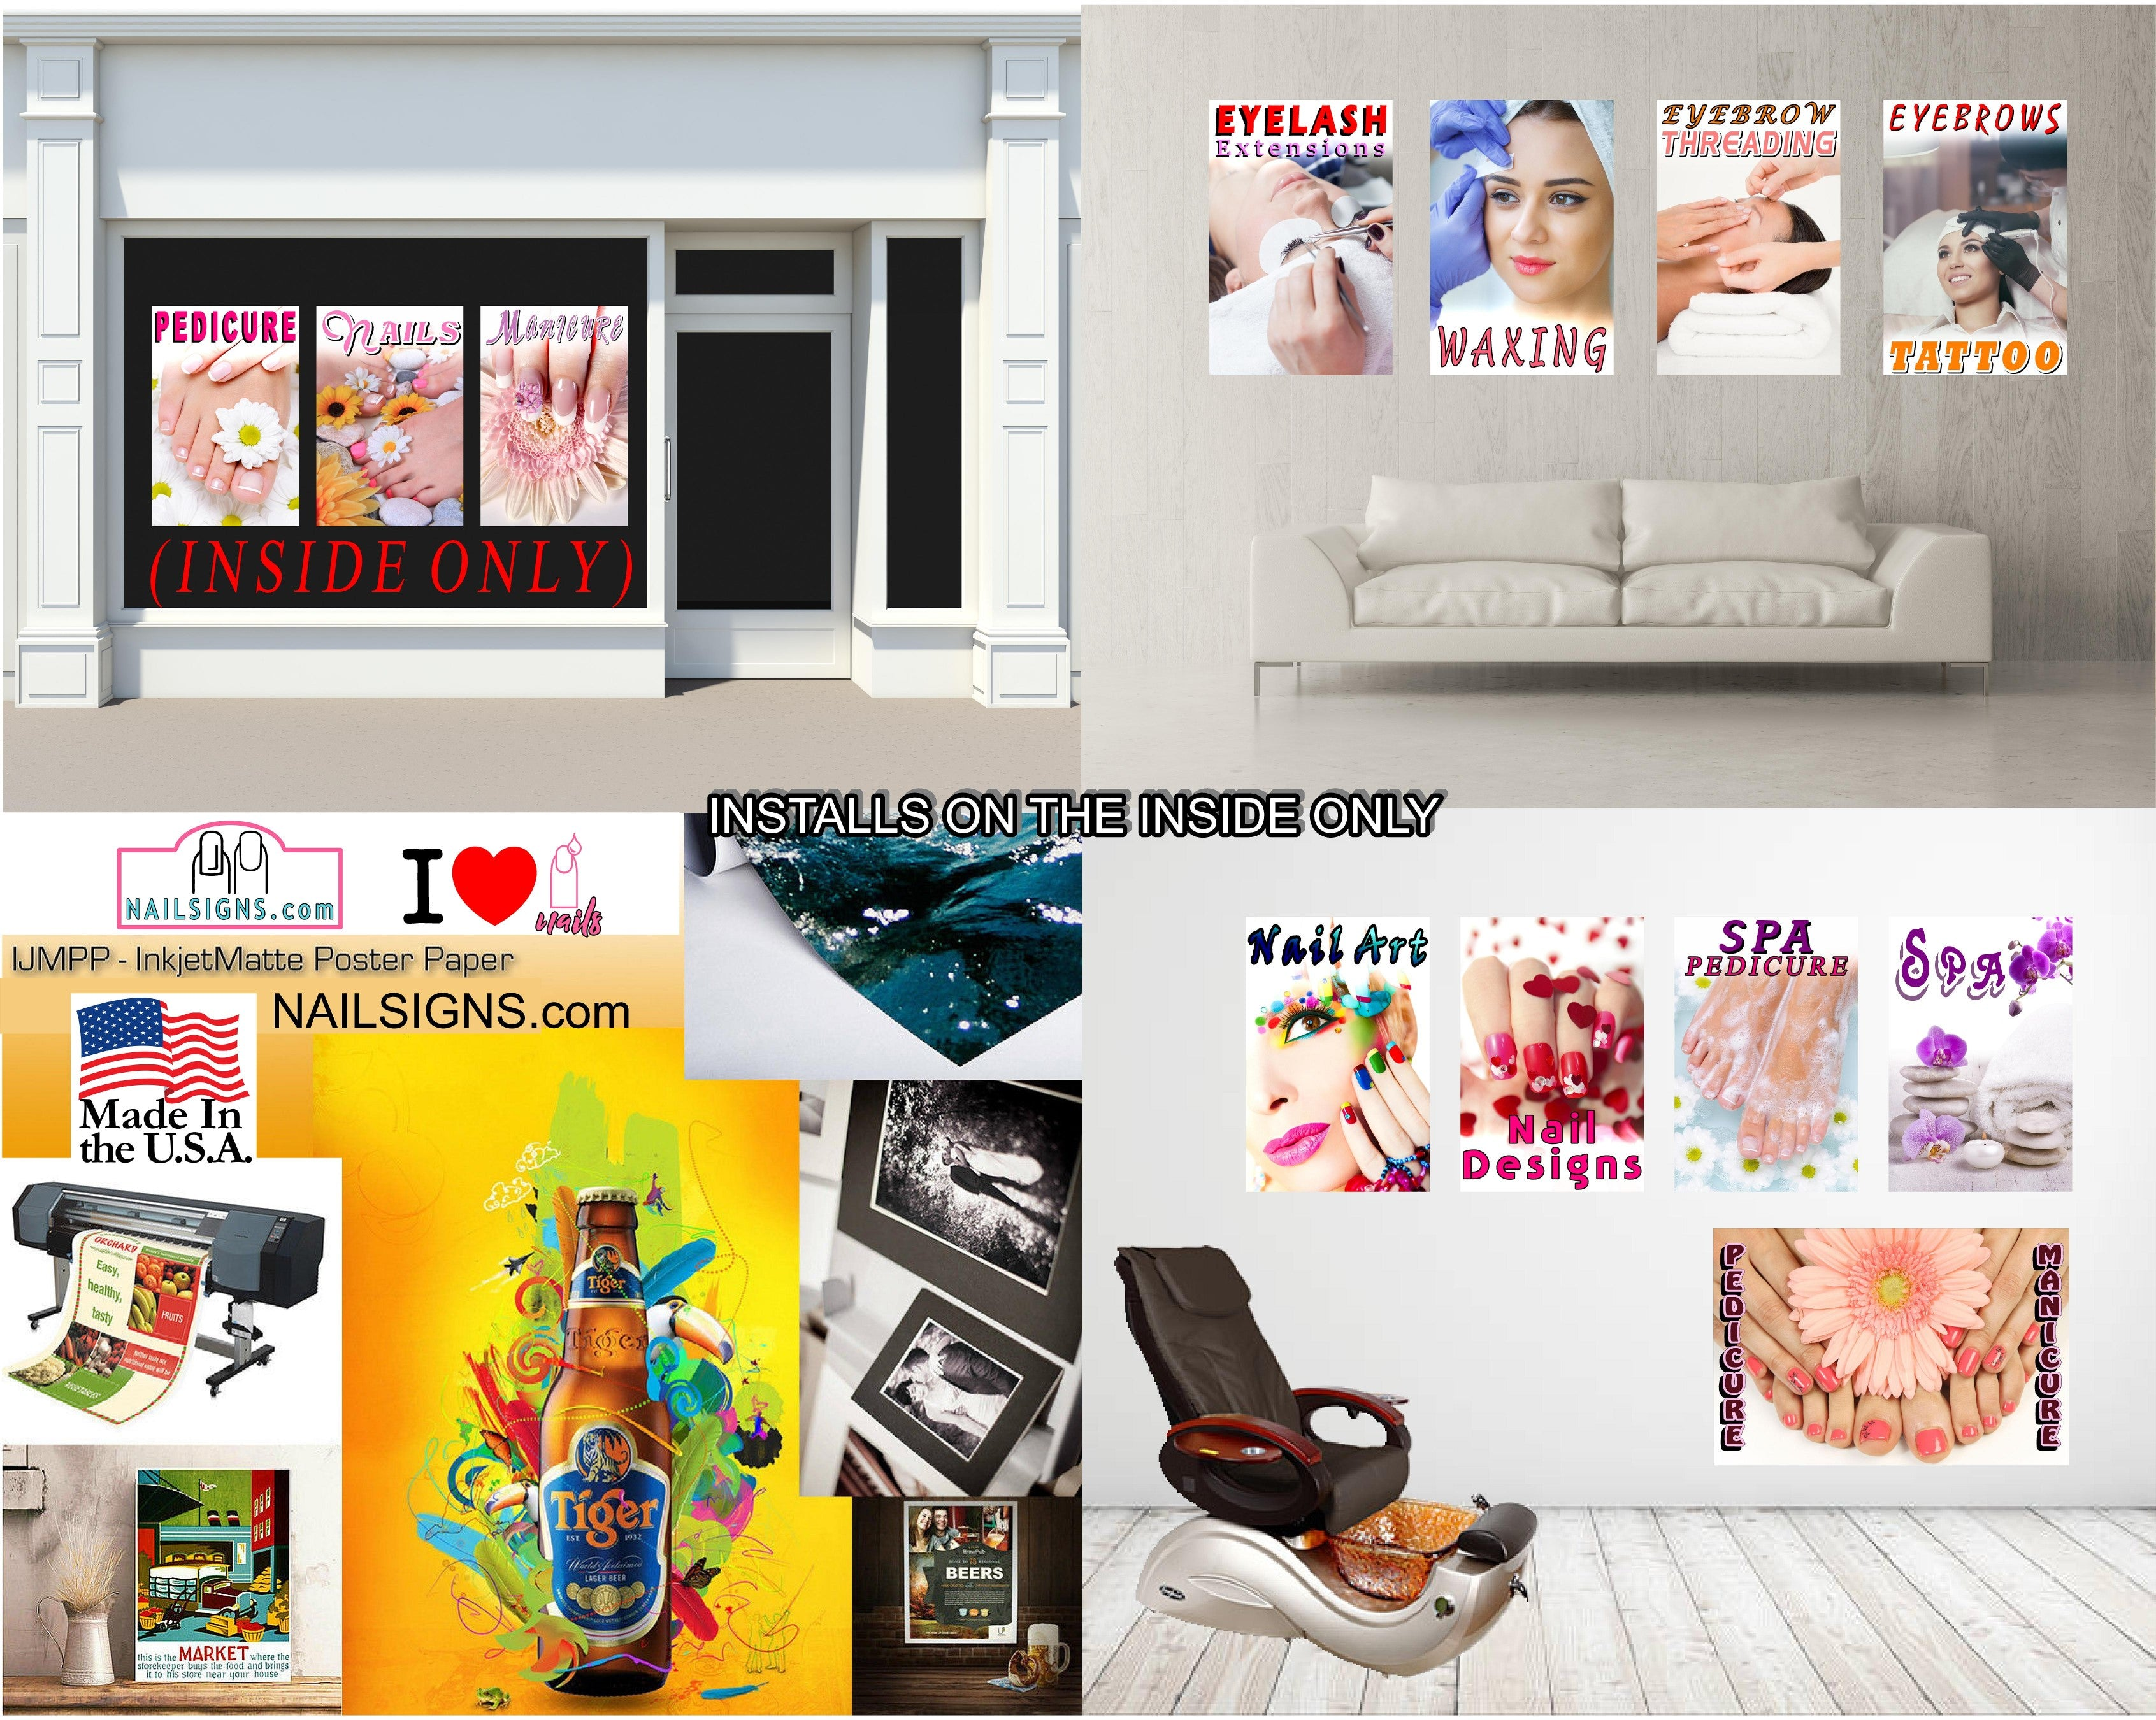 Spa 27 Photo-Realistic Paper Poster Premium Matte Interior Inside Sign Advertising Marketing Wall Window Non-Laminated Pedicure Vertical